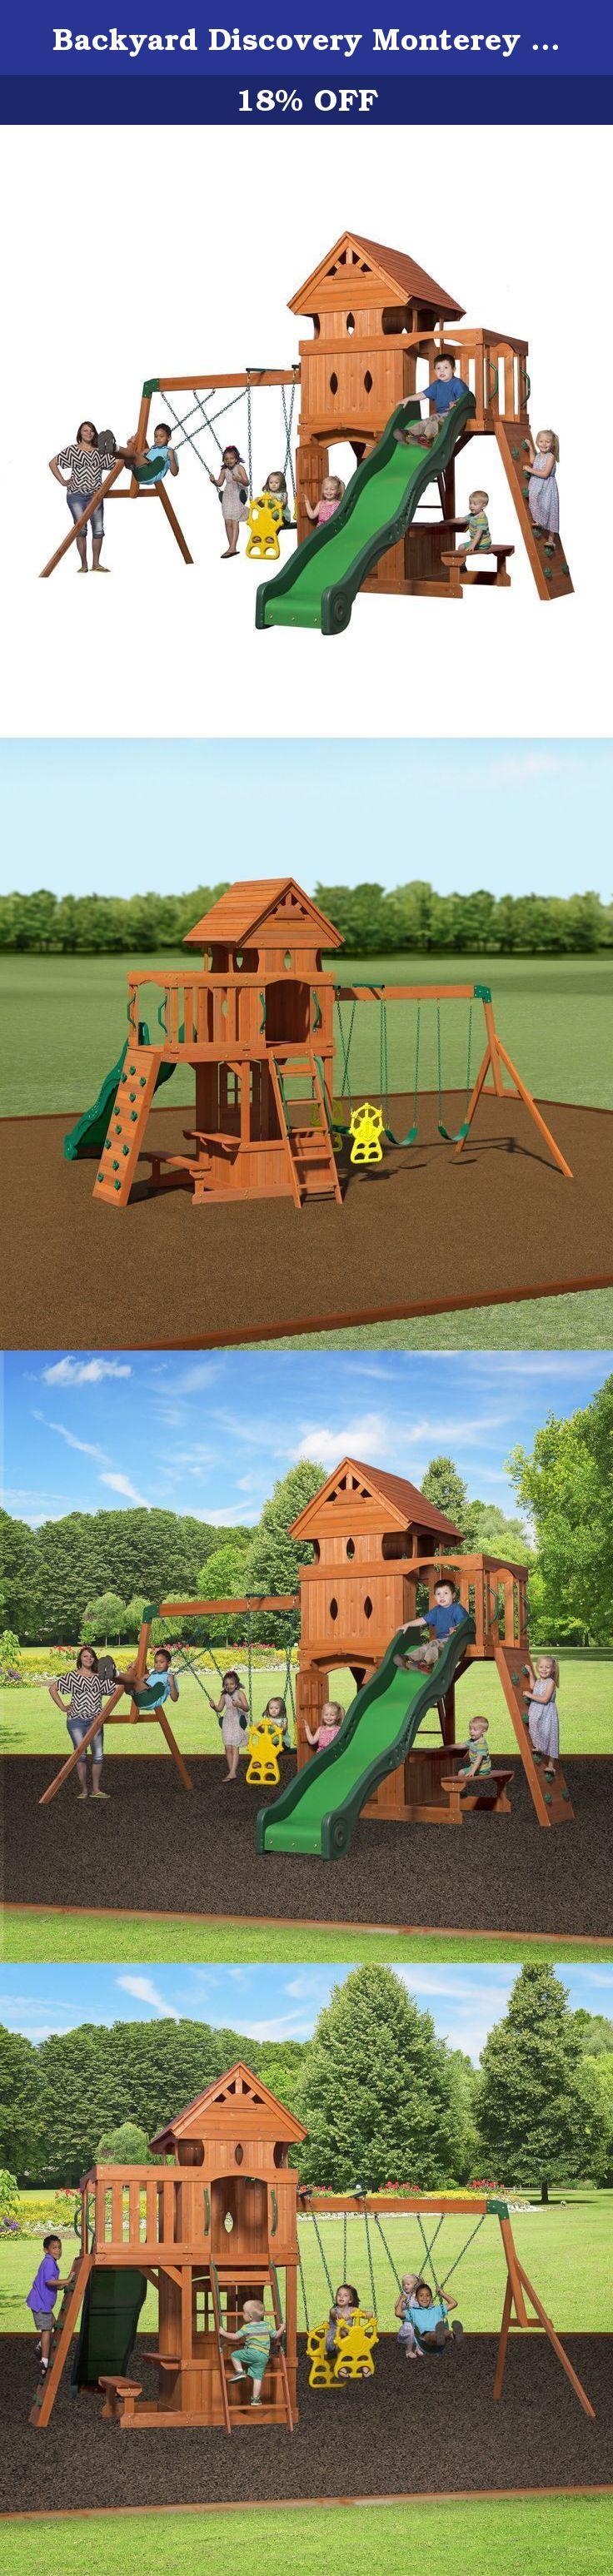 Backyard Discovery Monterey All Cedar Wood Playset Swing ...